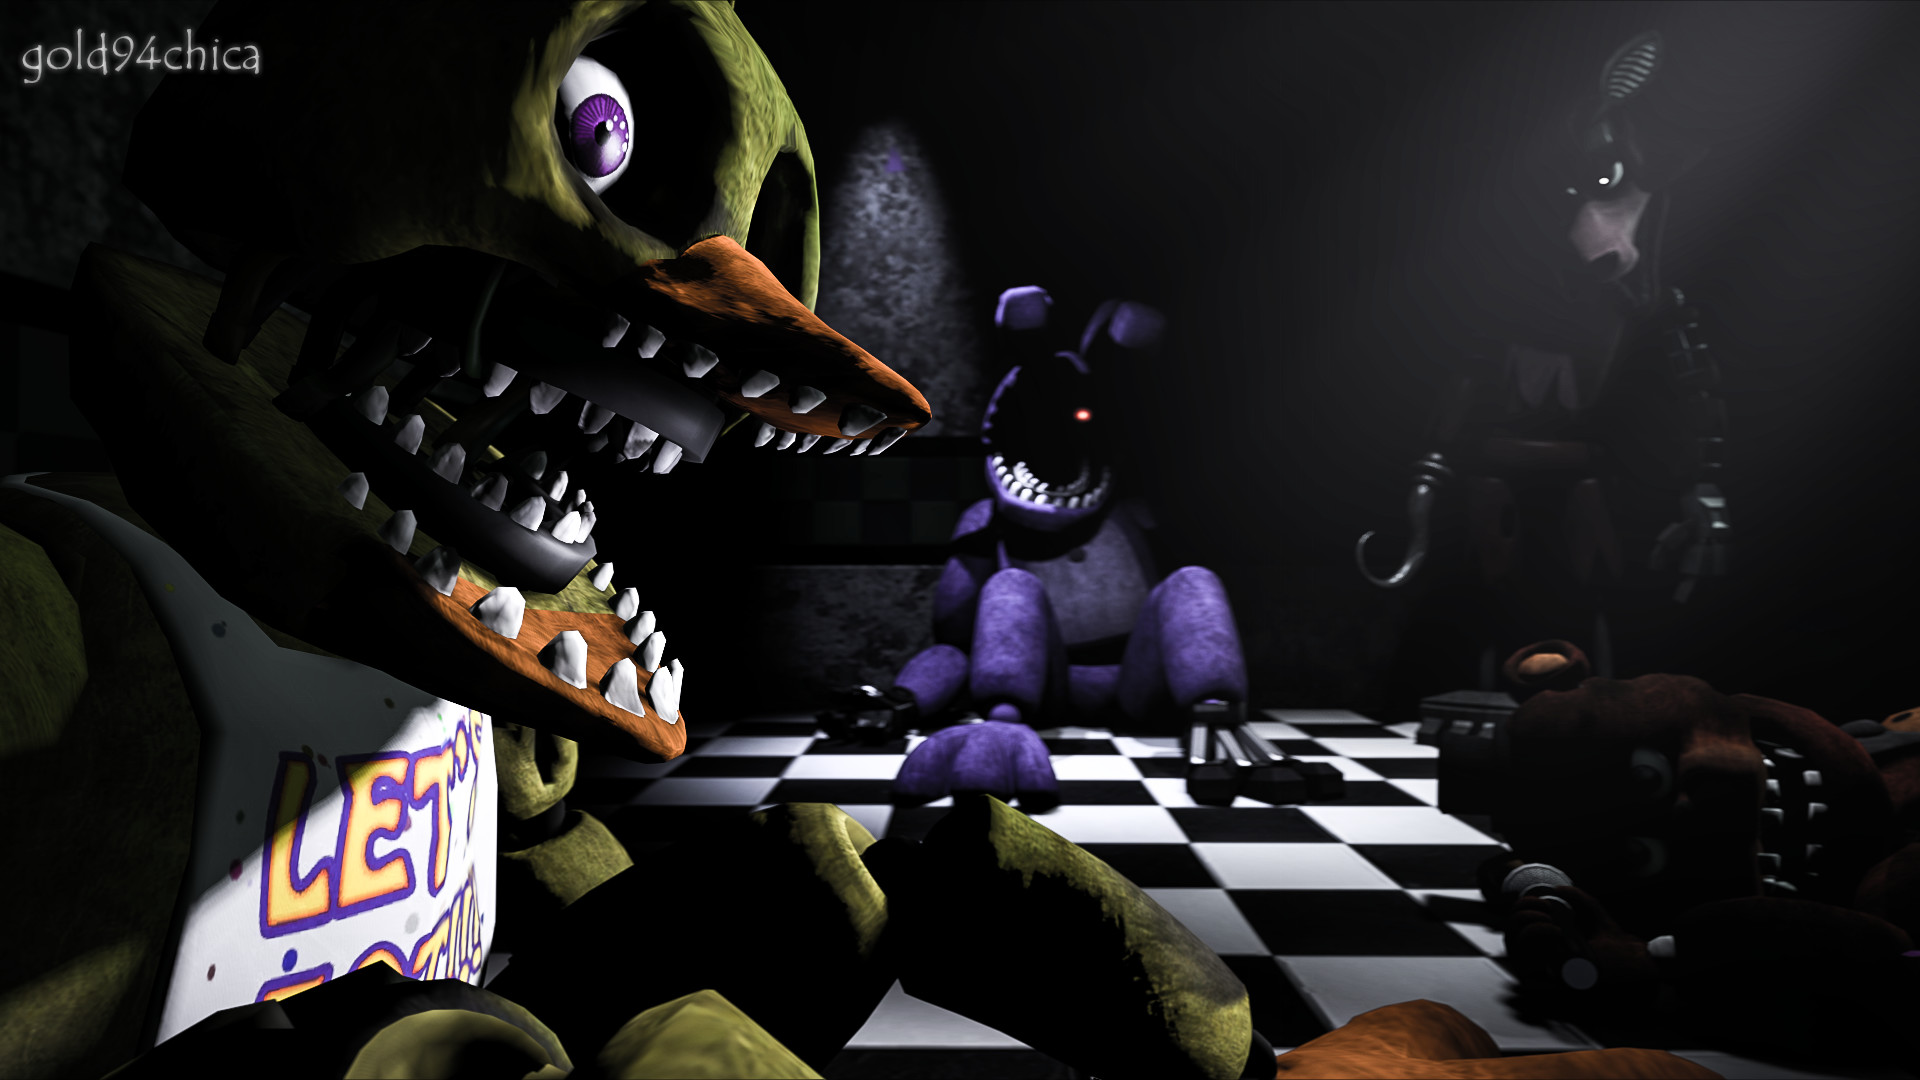 1920x1080 Awesome FNAF Images Collection: FNAF Wallpapers